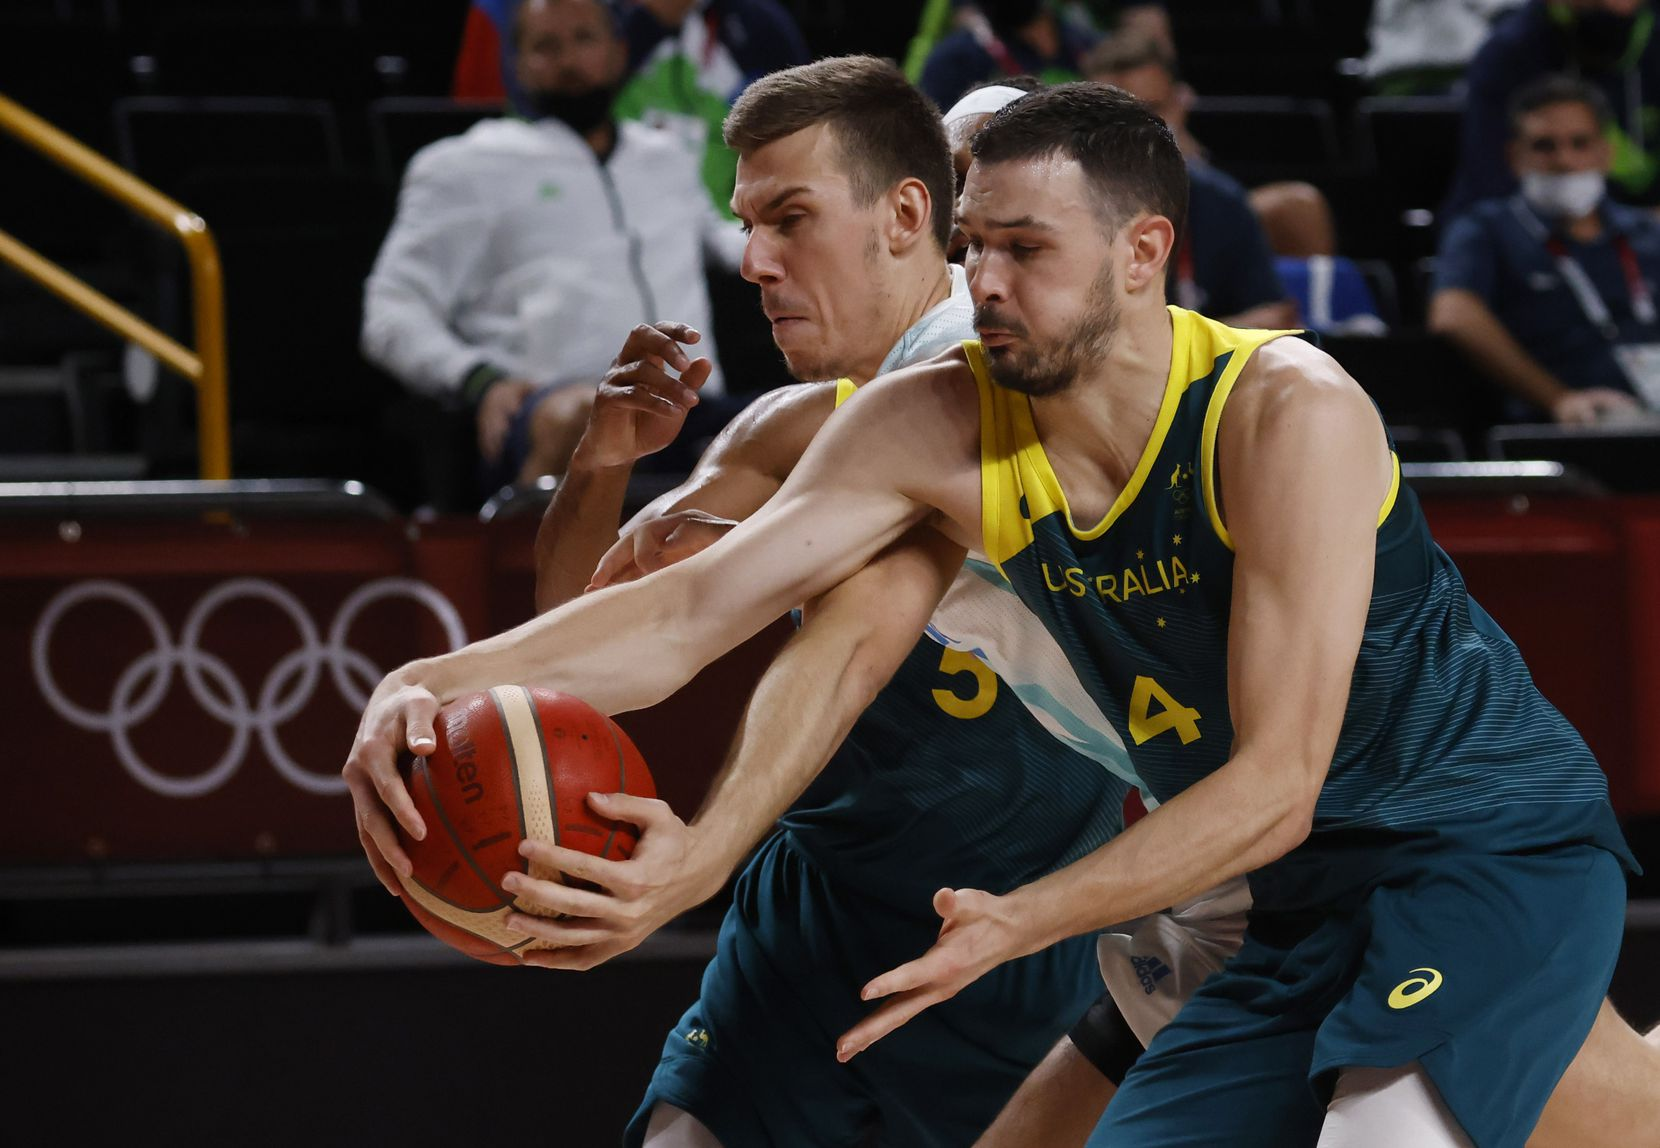 Slovenia's Vlatko Cancar (31) and Australia's Chris Goulding (4) fight for a loose ball during the second quarter of play in the bronze medal basketball game at the postponed 2020 Tokyo Olympics at Saitama Super Arena, on Saturday, August 7, 2021, in Saitama, Japan. (Vernon Bryant/The Dallas Morning News)